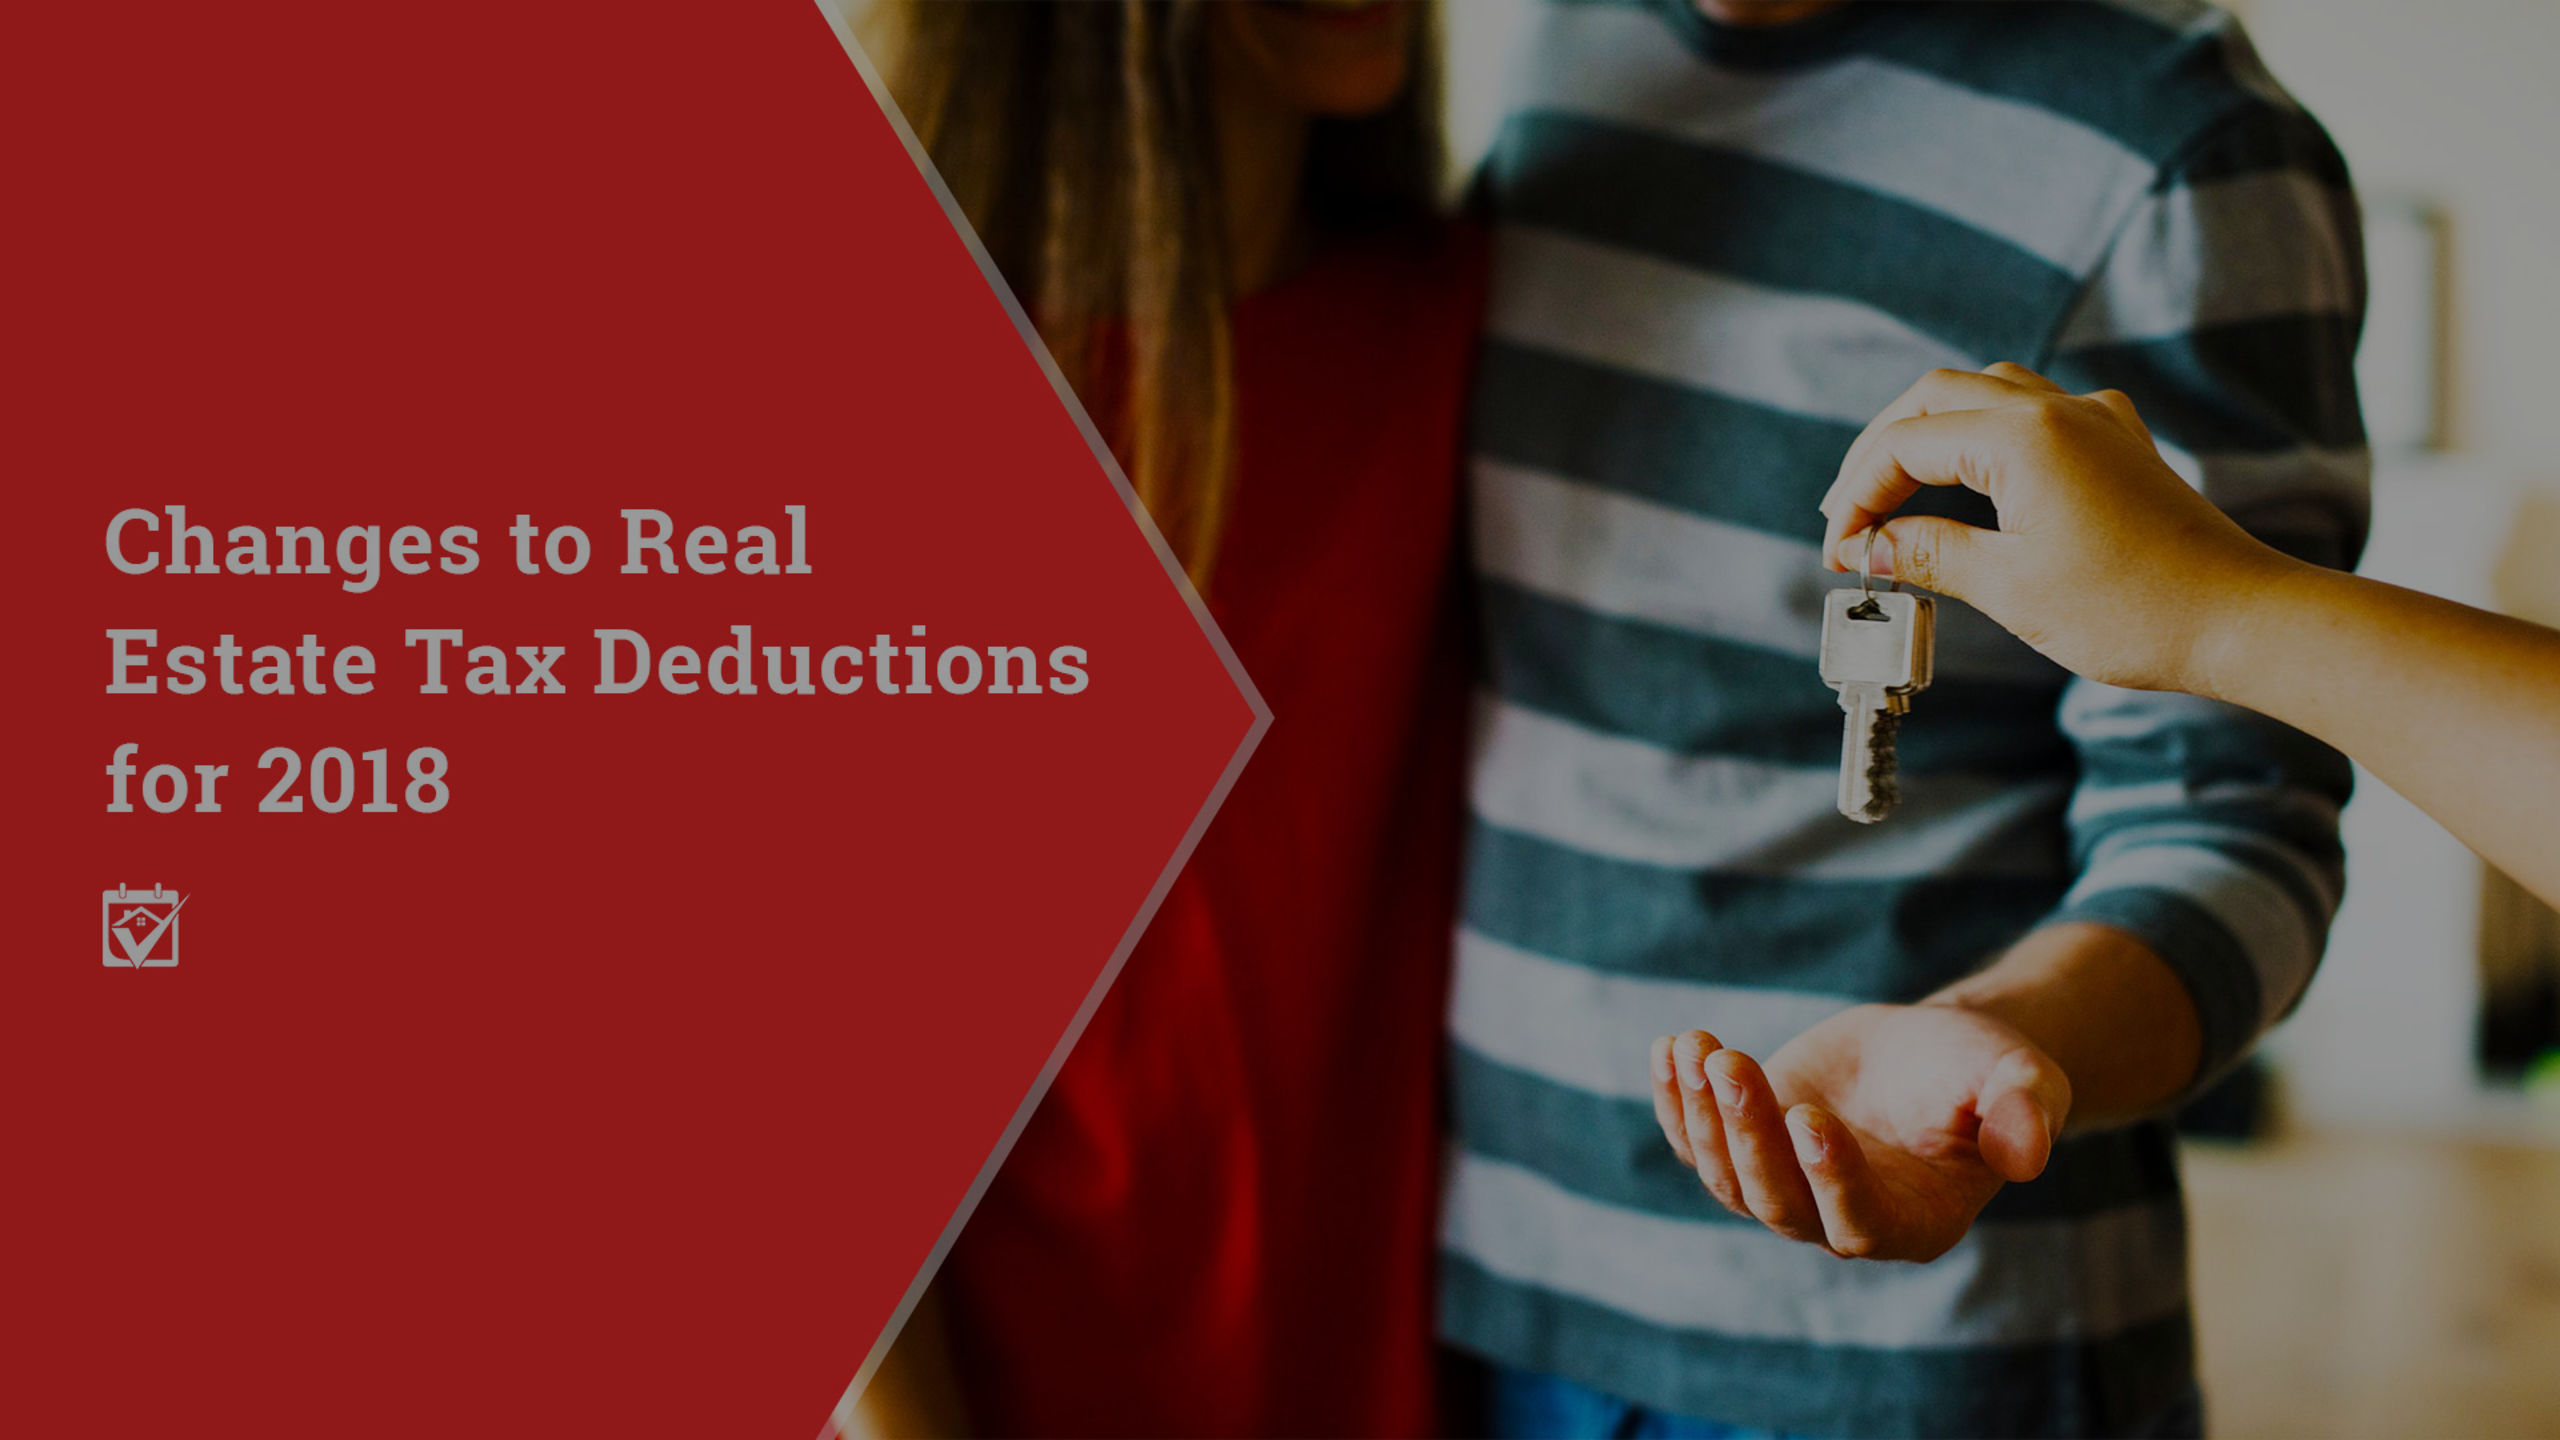 Changes to Real Estate Tax Deductions for 2018